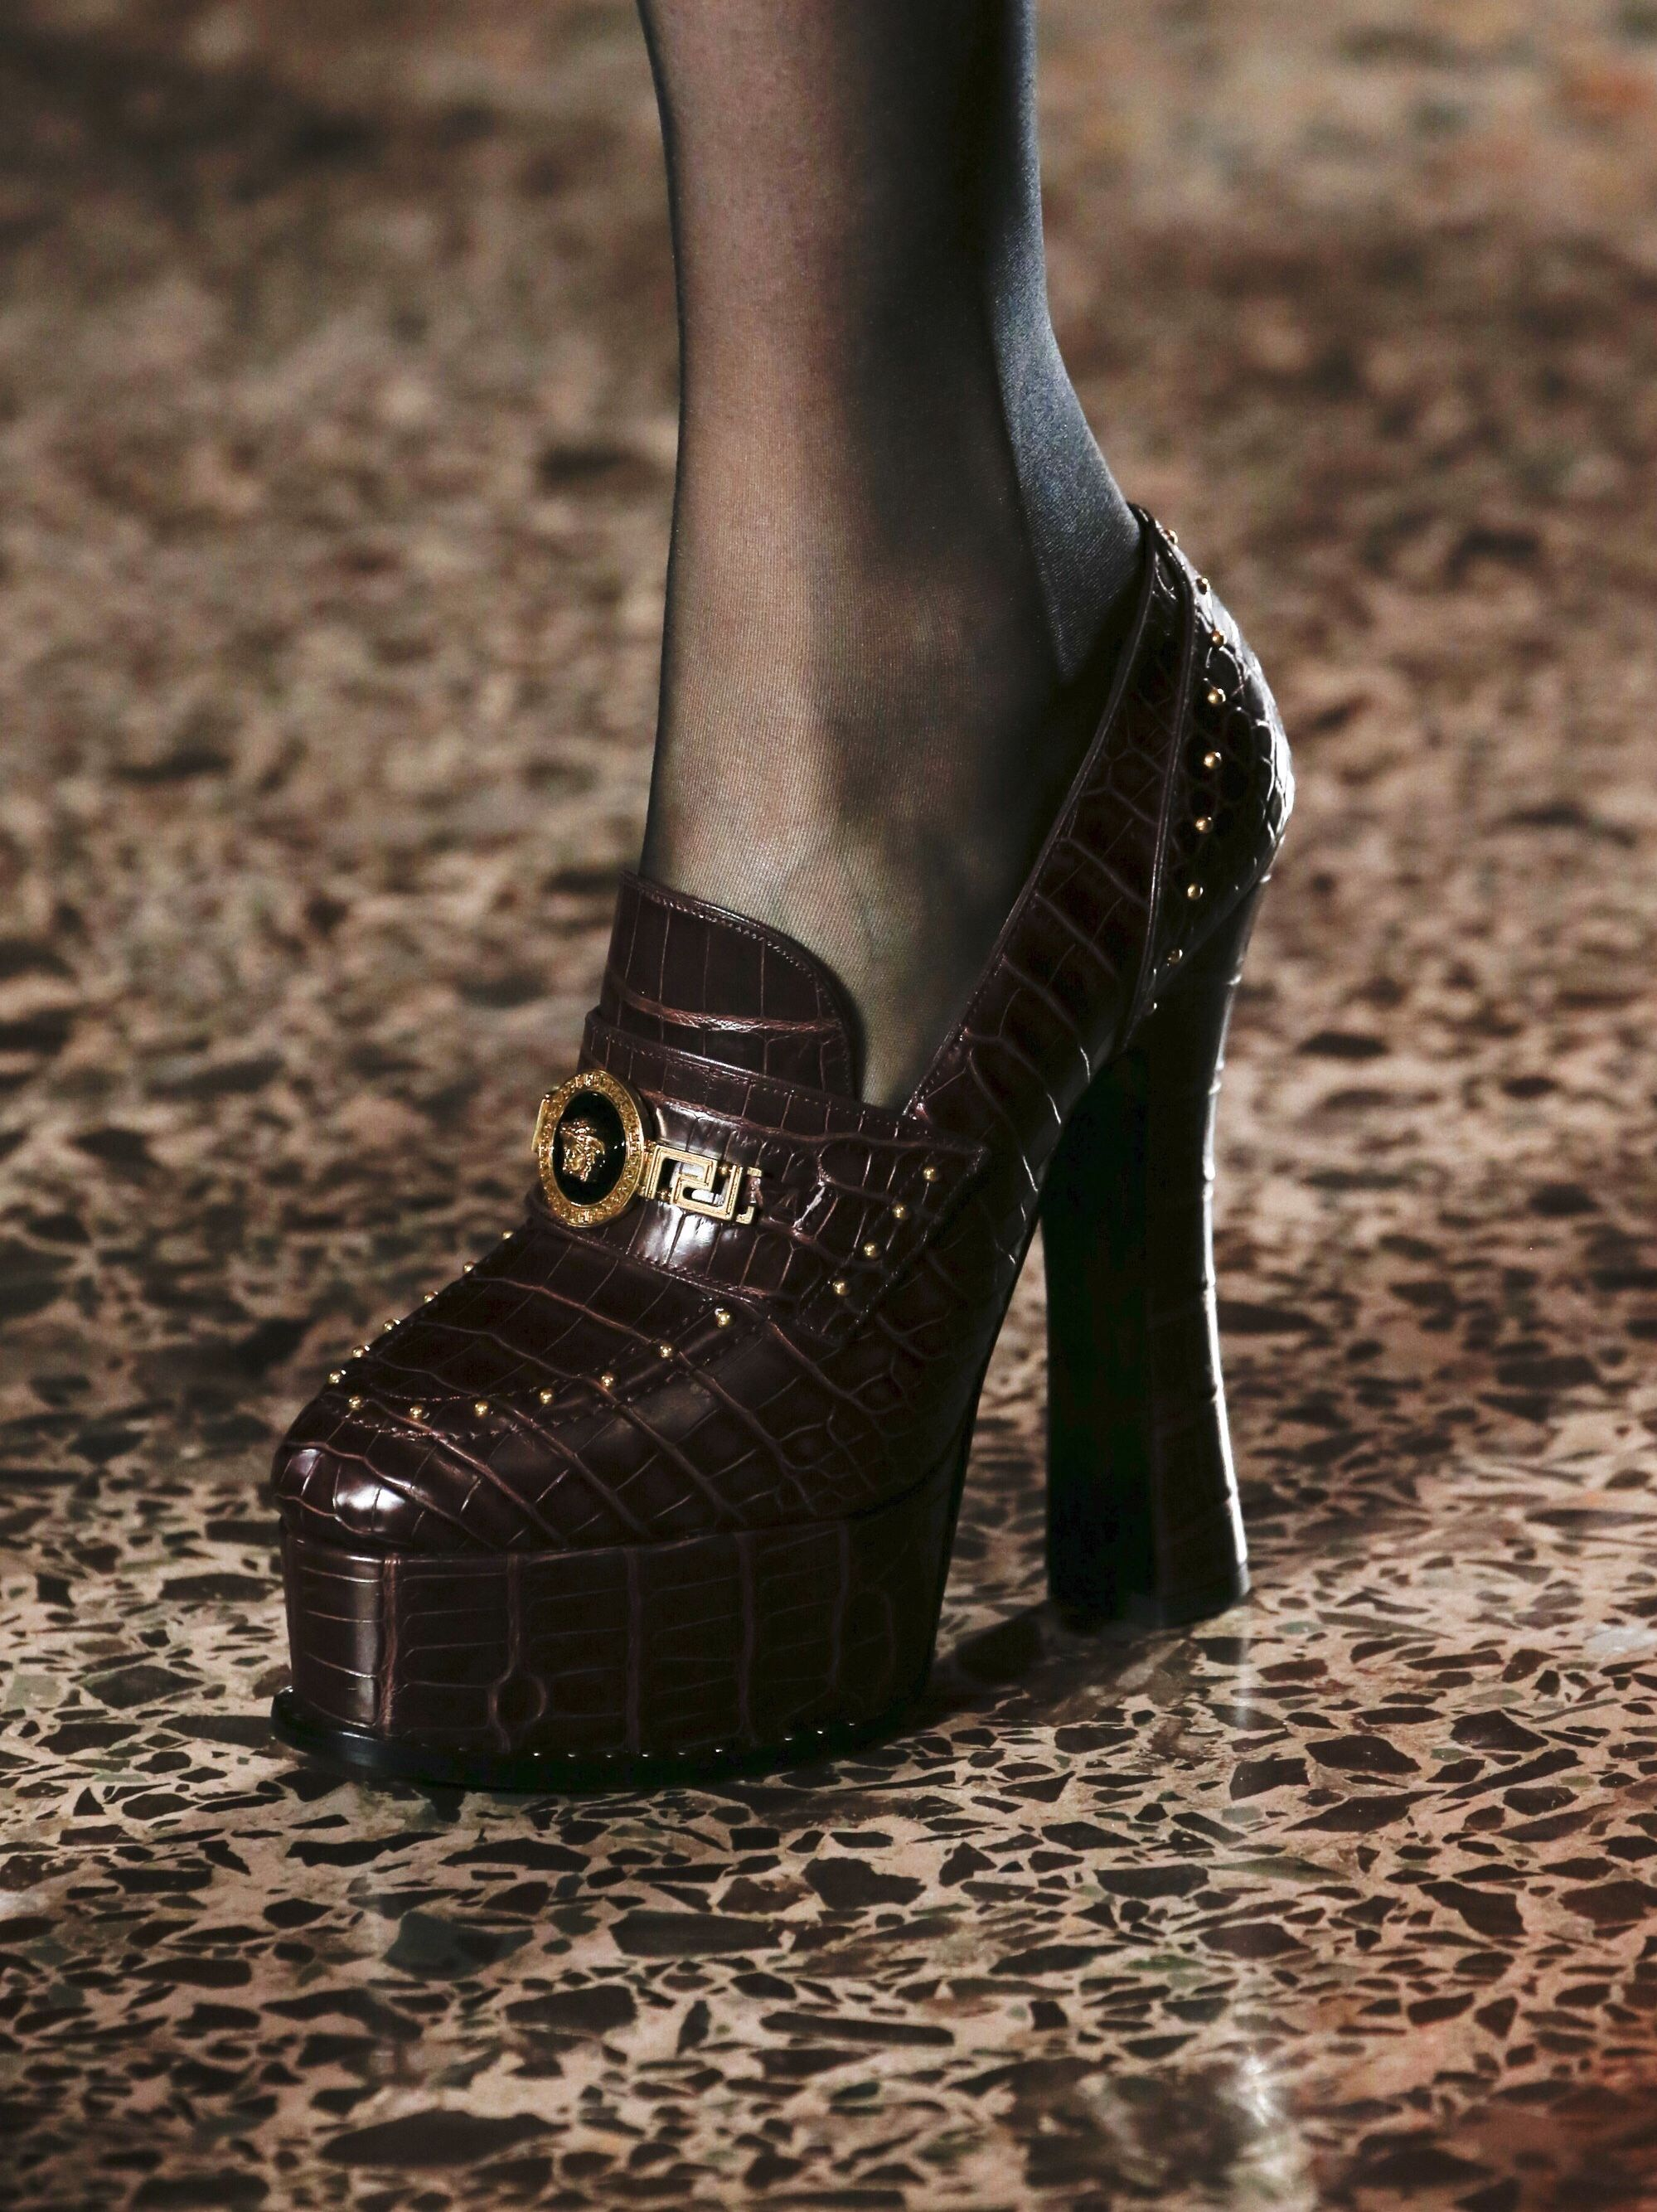 VERSACE Fall 2018 Ready-To-Wear Shoes